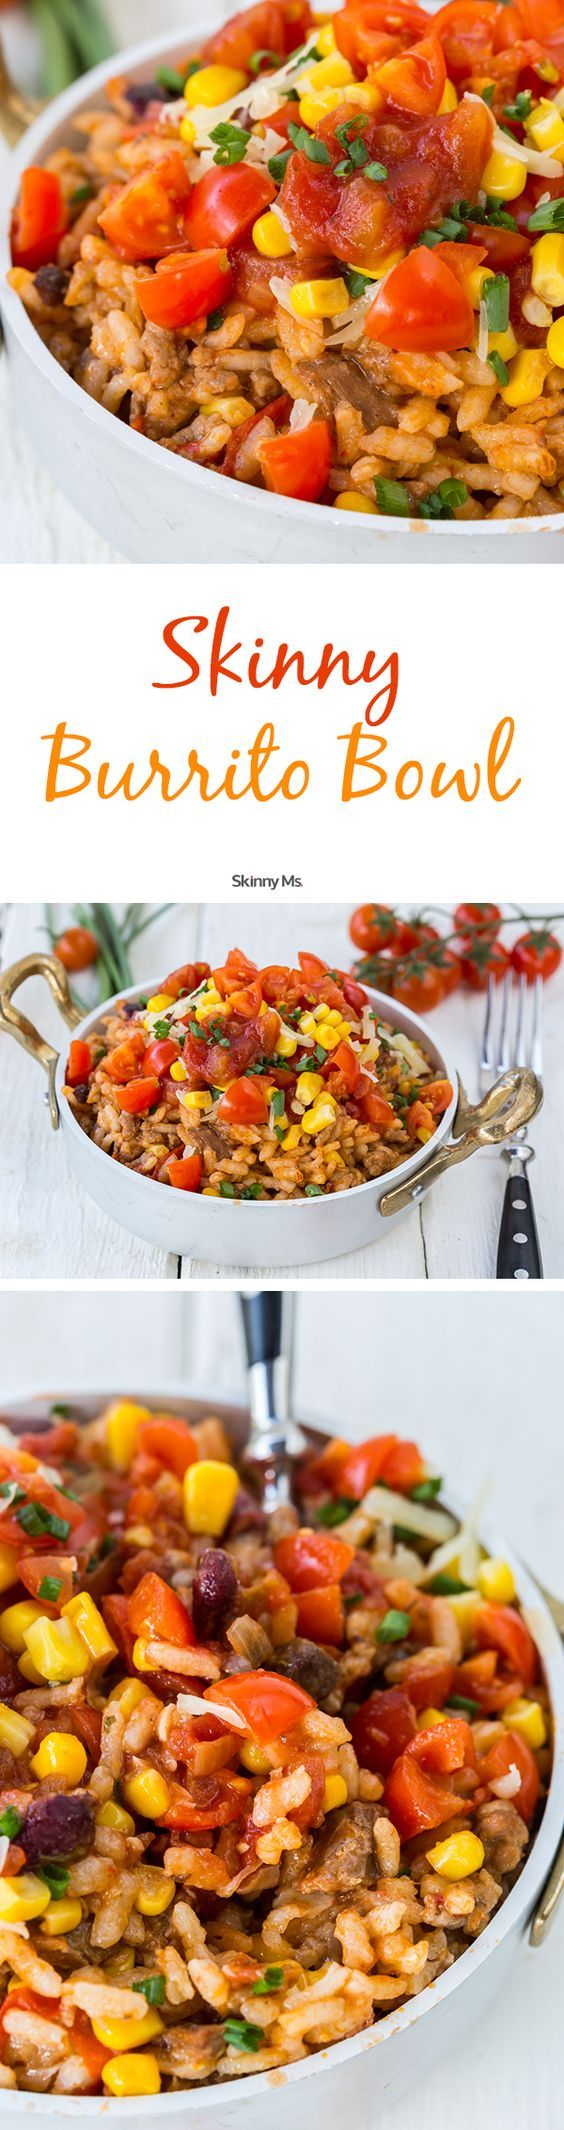 This Skinny Burrito Bowl is a recipe that tastes like takeout that you can make at home! #burritobowl #takeoutfakeout #Mexican: